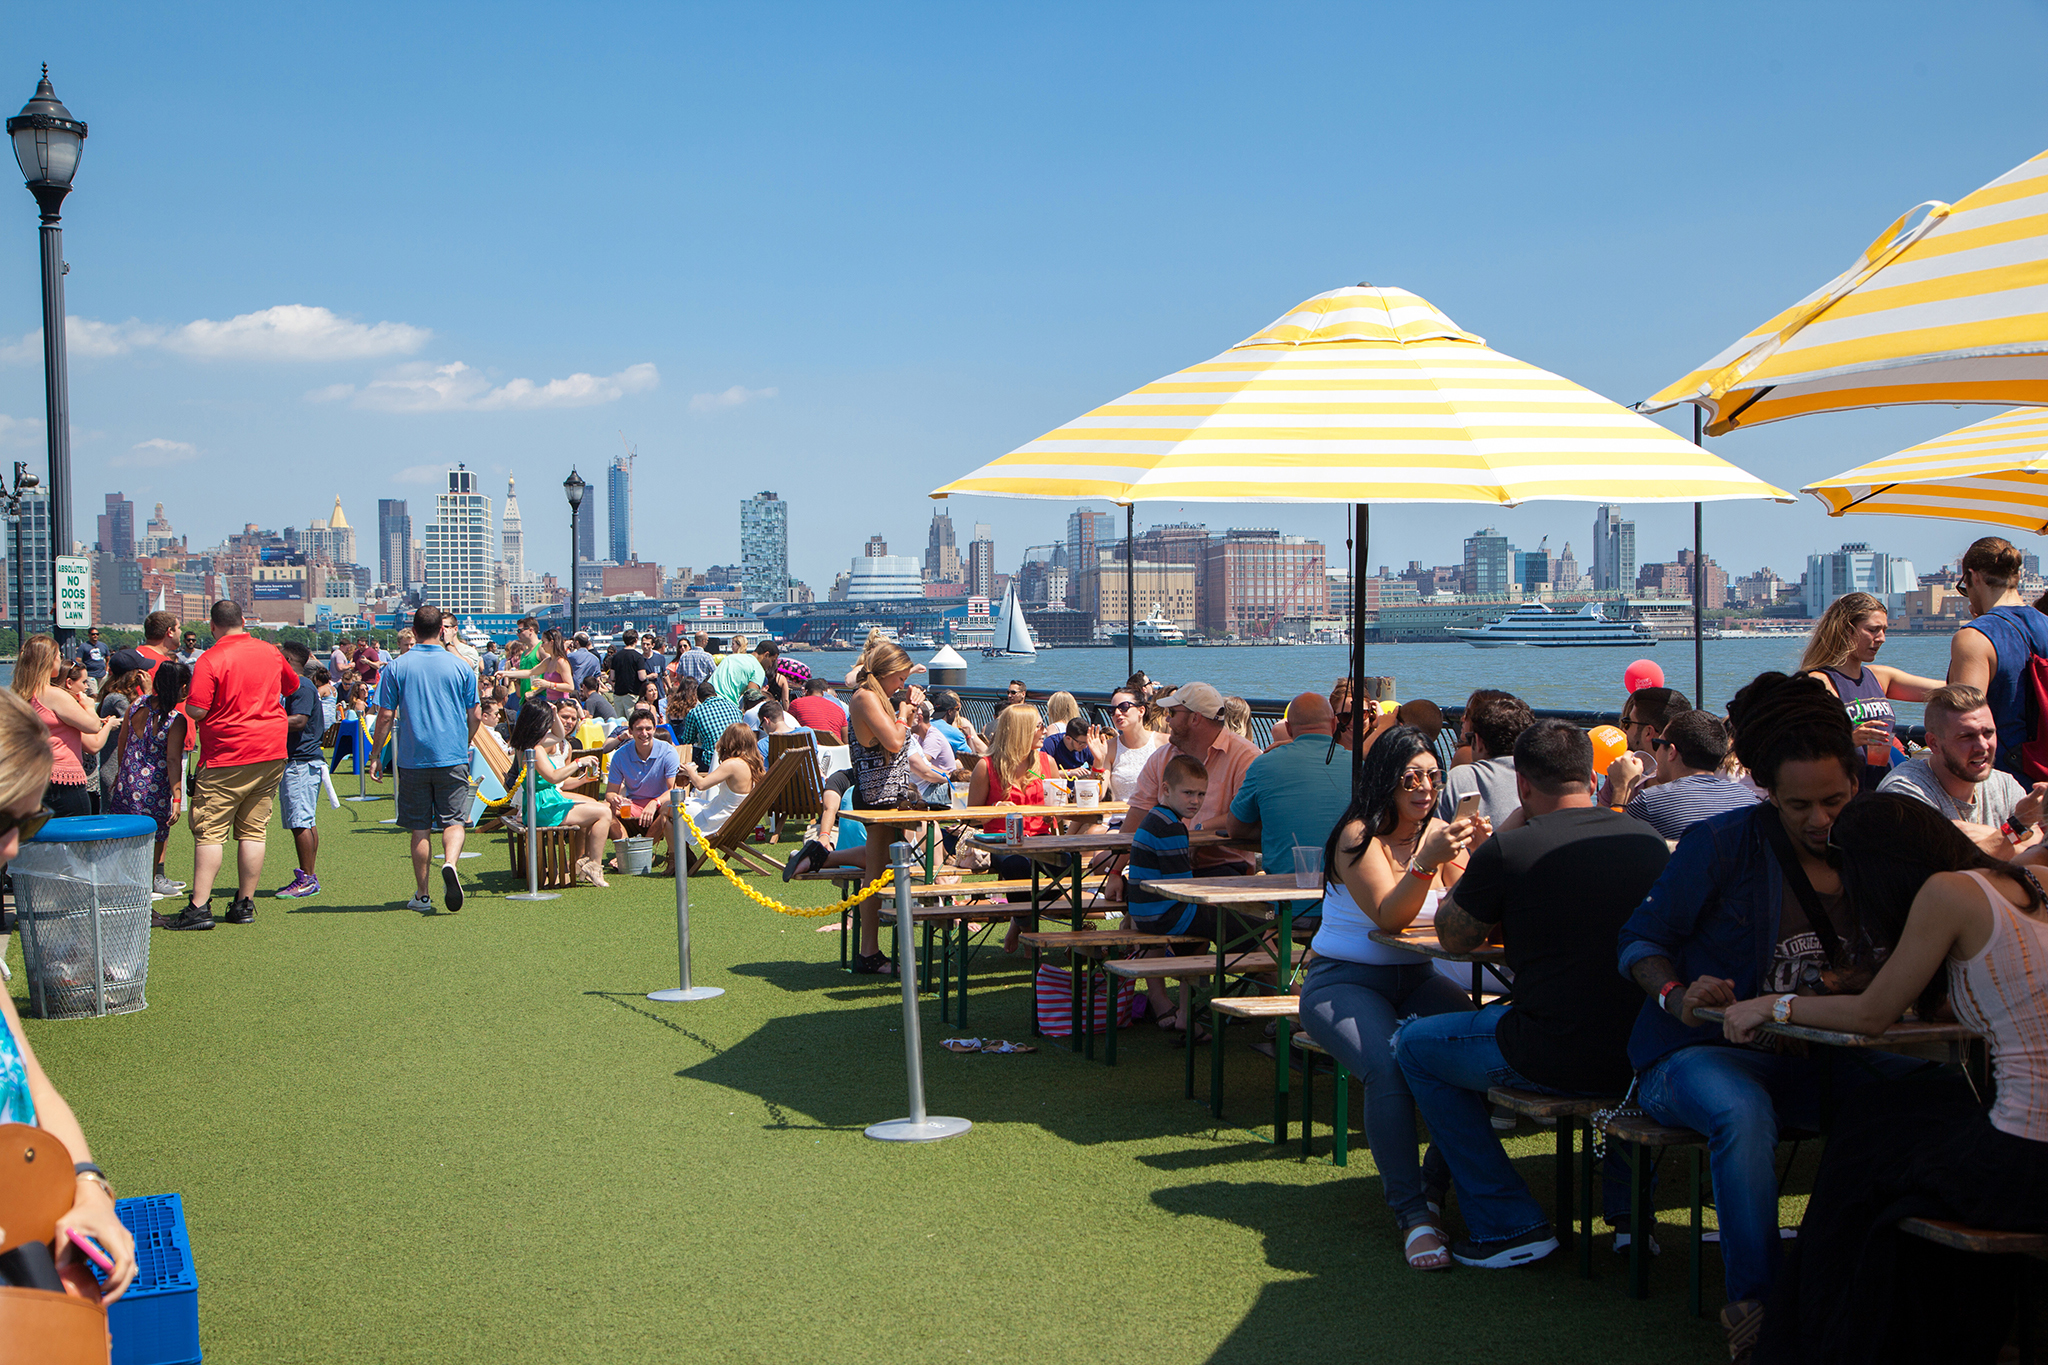 The 10 best things to do in Hoboken, NJ